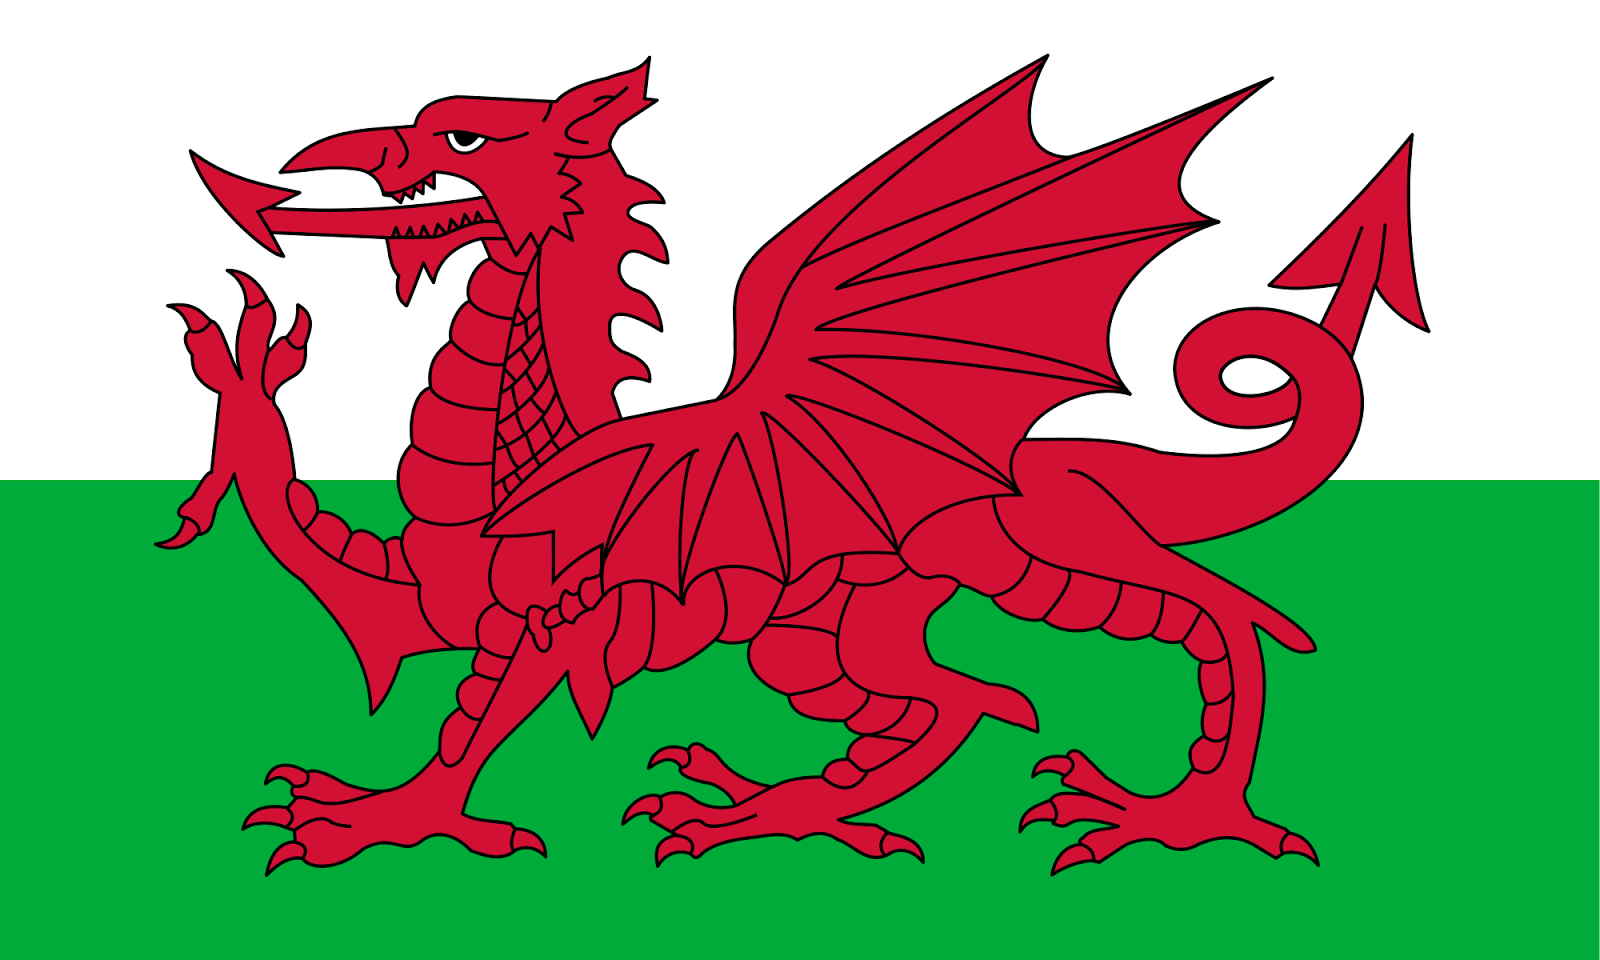 Twitter Headers Facebook Covers Wallpapers Calendars Wales 1600x960